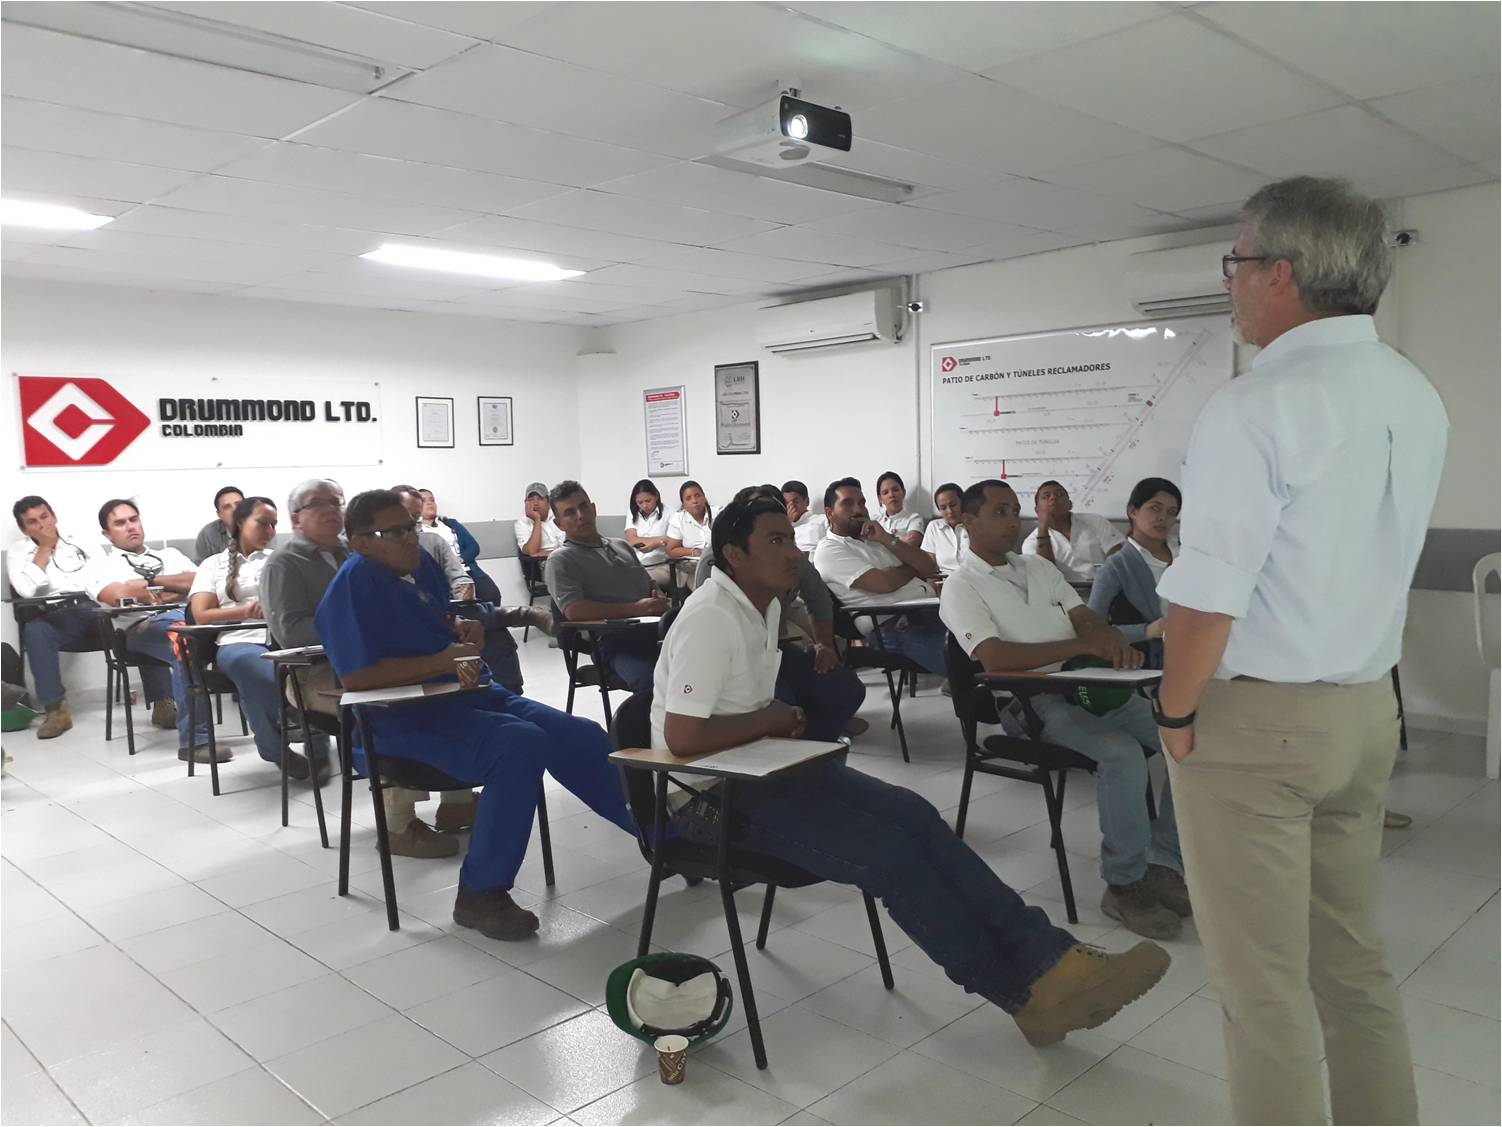 Drummond Ltd. employees receiving training from José Rafael Unda, manager of Ardura S.A.S., a company with expertise in human rights.